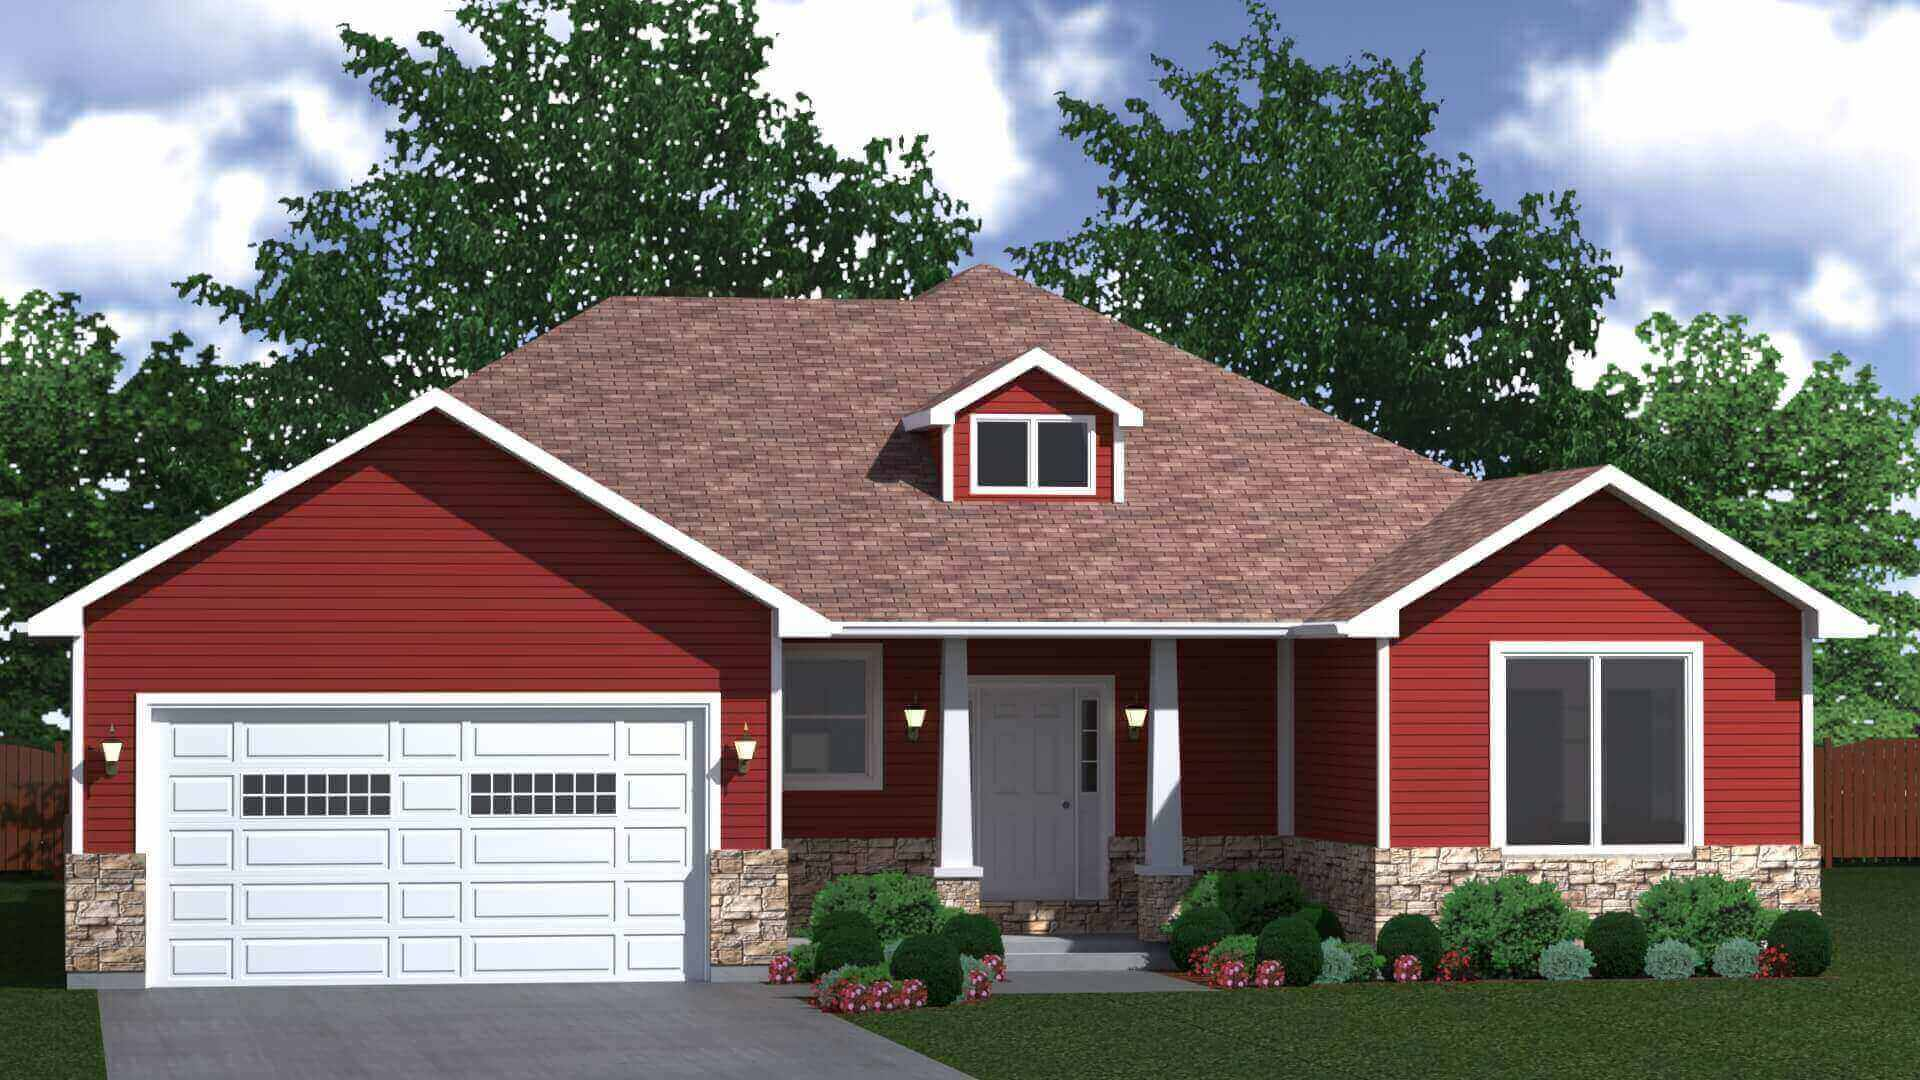 1945 sq.ft. timber mart house 3 bed 2 bath exterior render